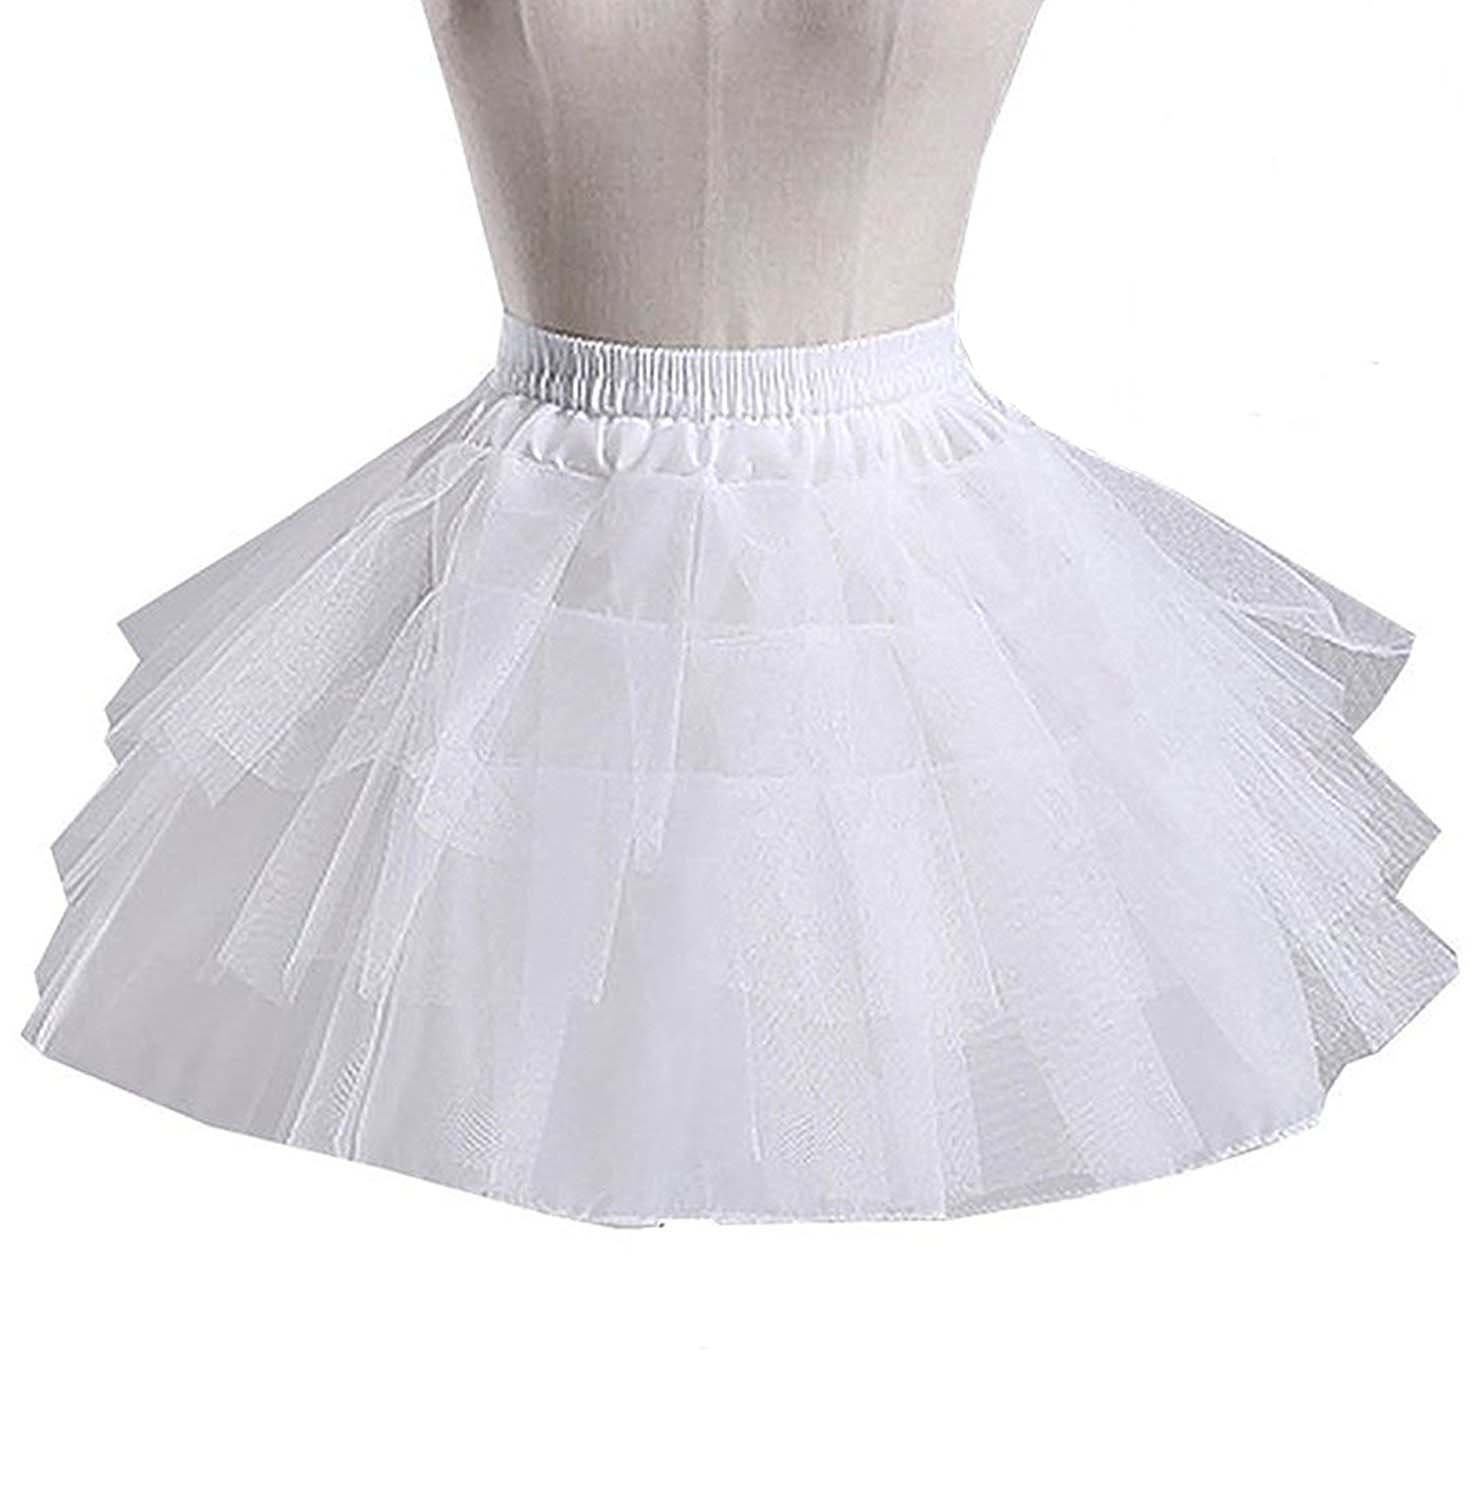 LastBridal Little Girl's Vintage Underskirt Petticoat Half Slip Tulle Lace Crinoline For Wedding Party Flower Girls Skirt (One Size, White 3)